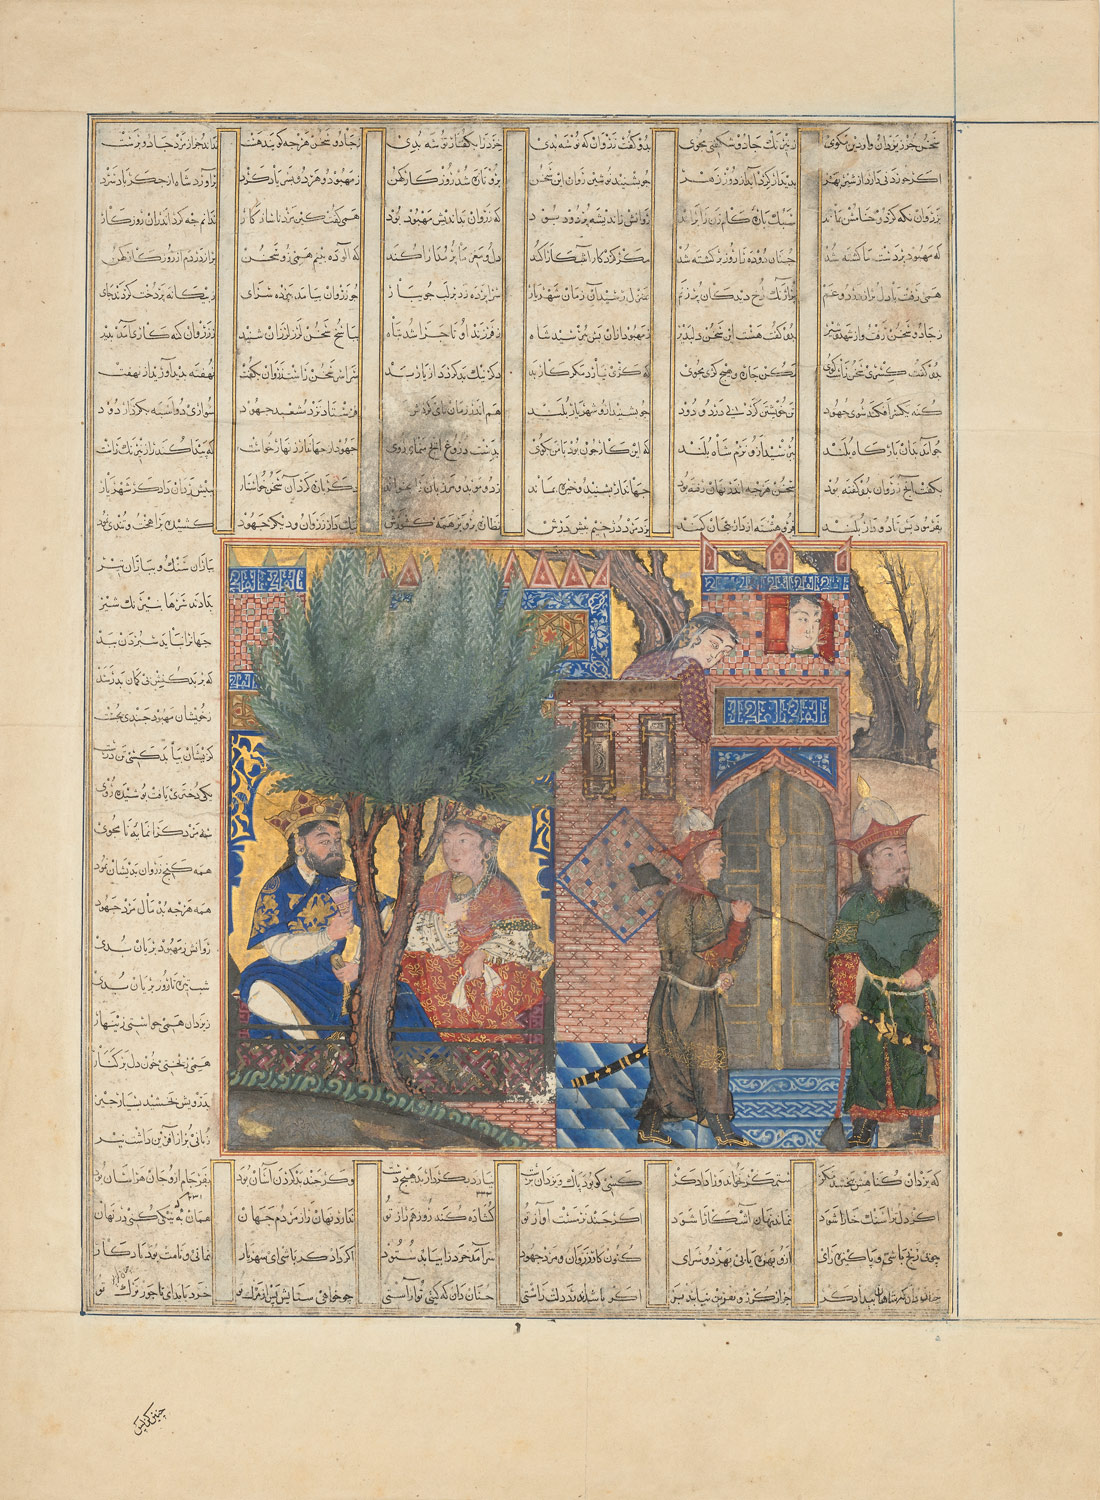 Nushirvan Eating Food Brought by the Sons of Mahbud, Folio from a Shahnama (Book of Kings)